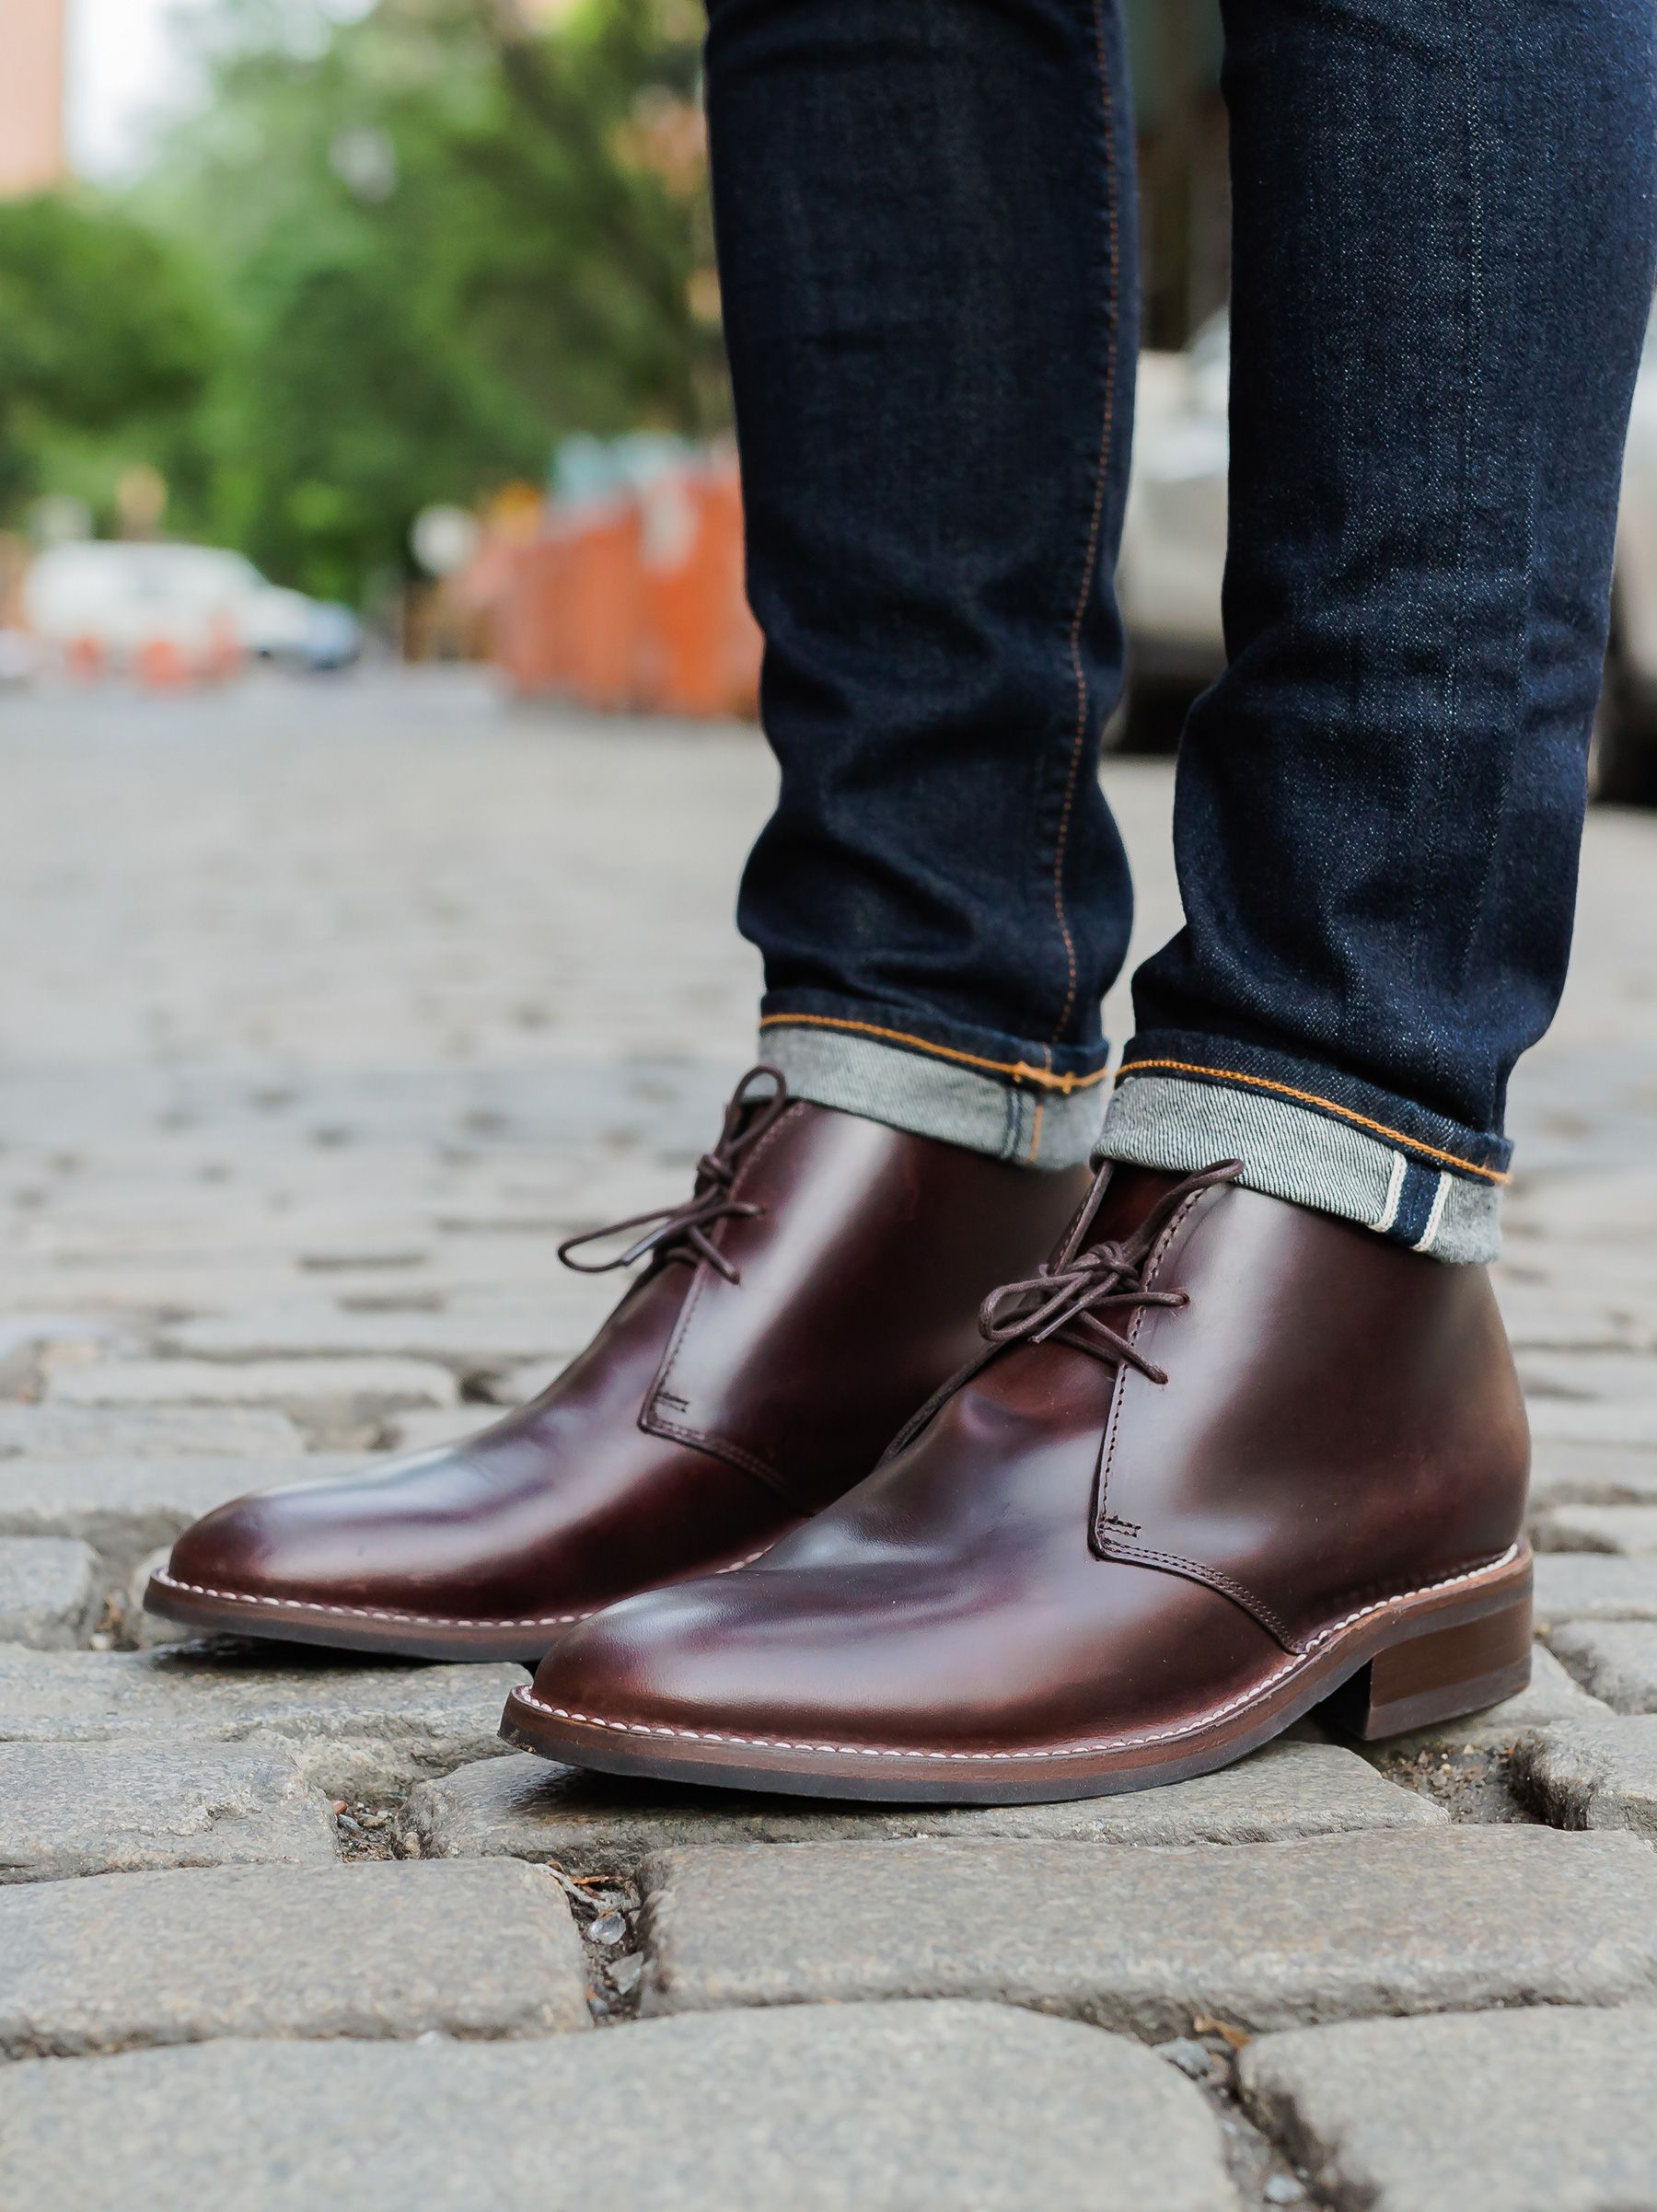 0fb483958526 The chukka for a new generation. Blending classic British style with our  own American aesthetic to be more durable and versatile.